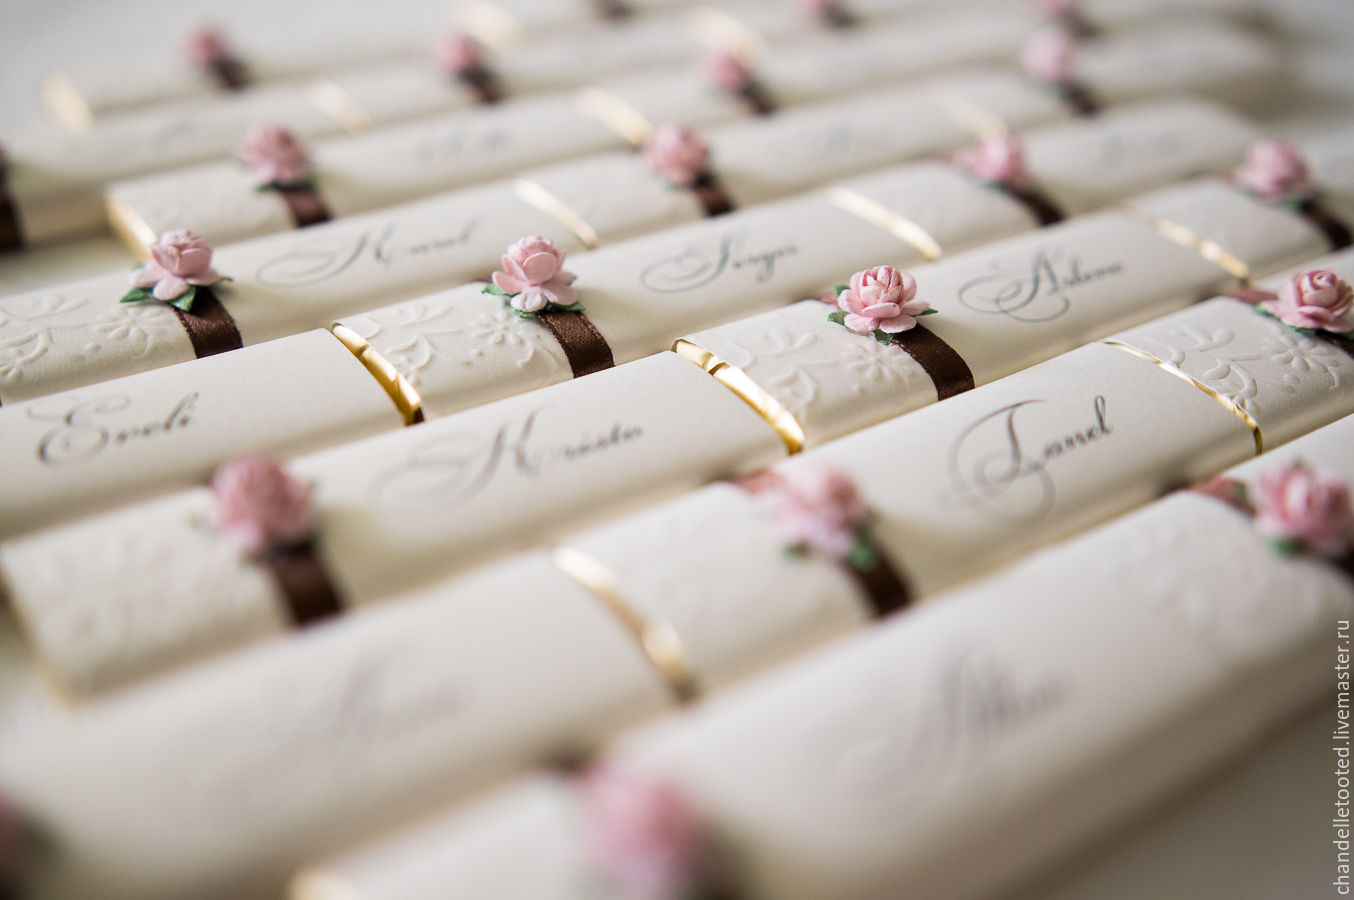 Wedding Place Cards Milk Chocolate Chocolate Wedding Gift Dinner